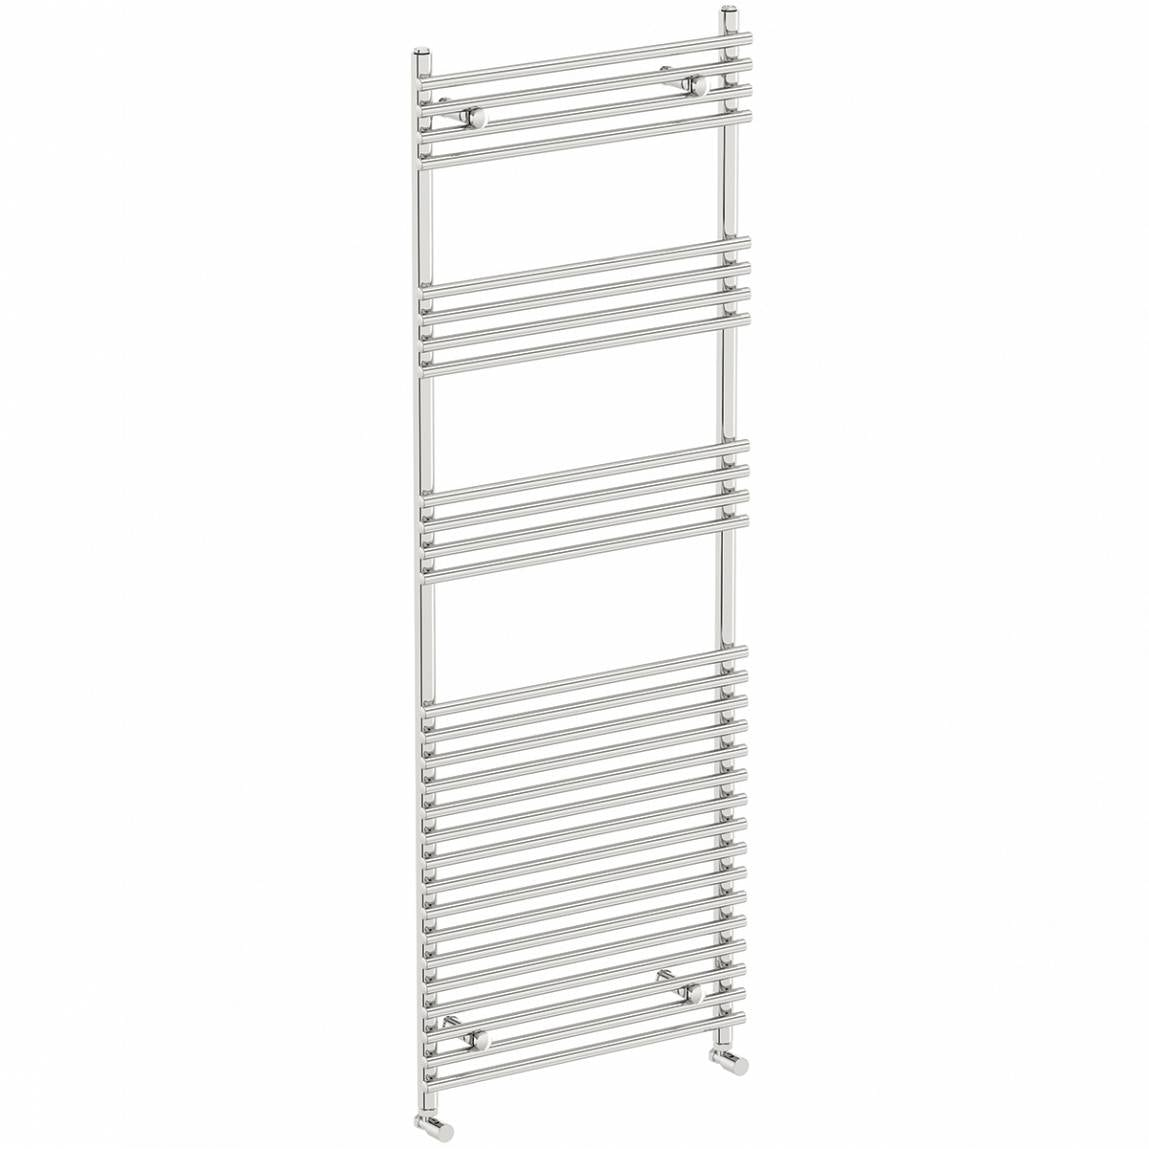 Orchard Derwent heated towel rail 1650 x 600 offer pack